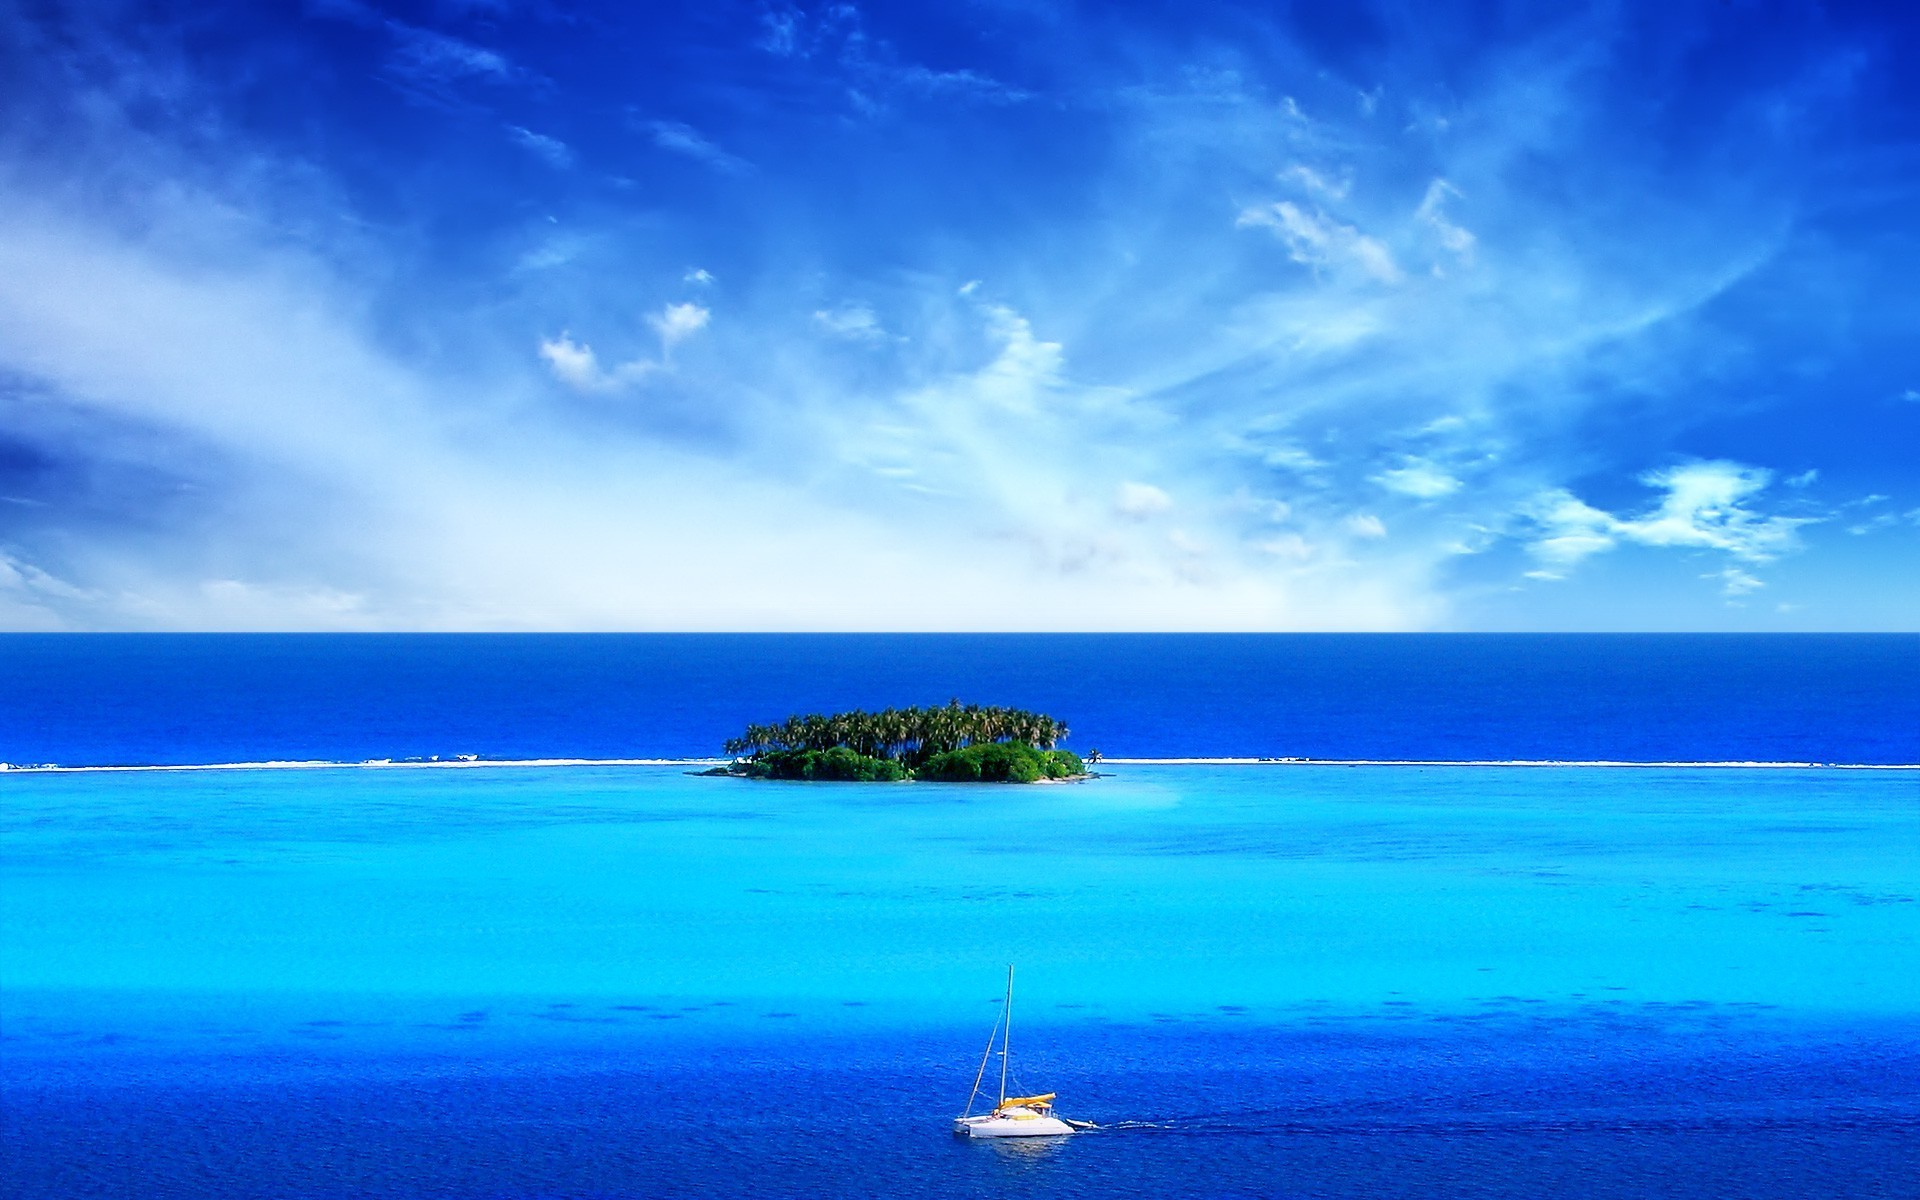 Sailing around the tropical island wallpaper   1034041 1920x1200